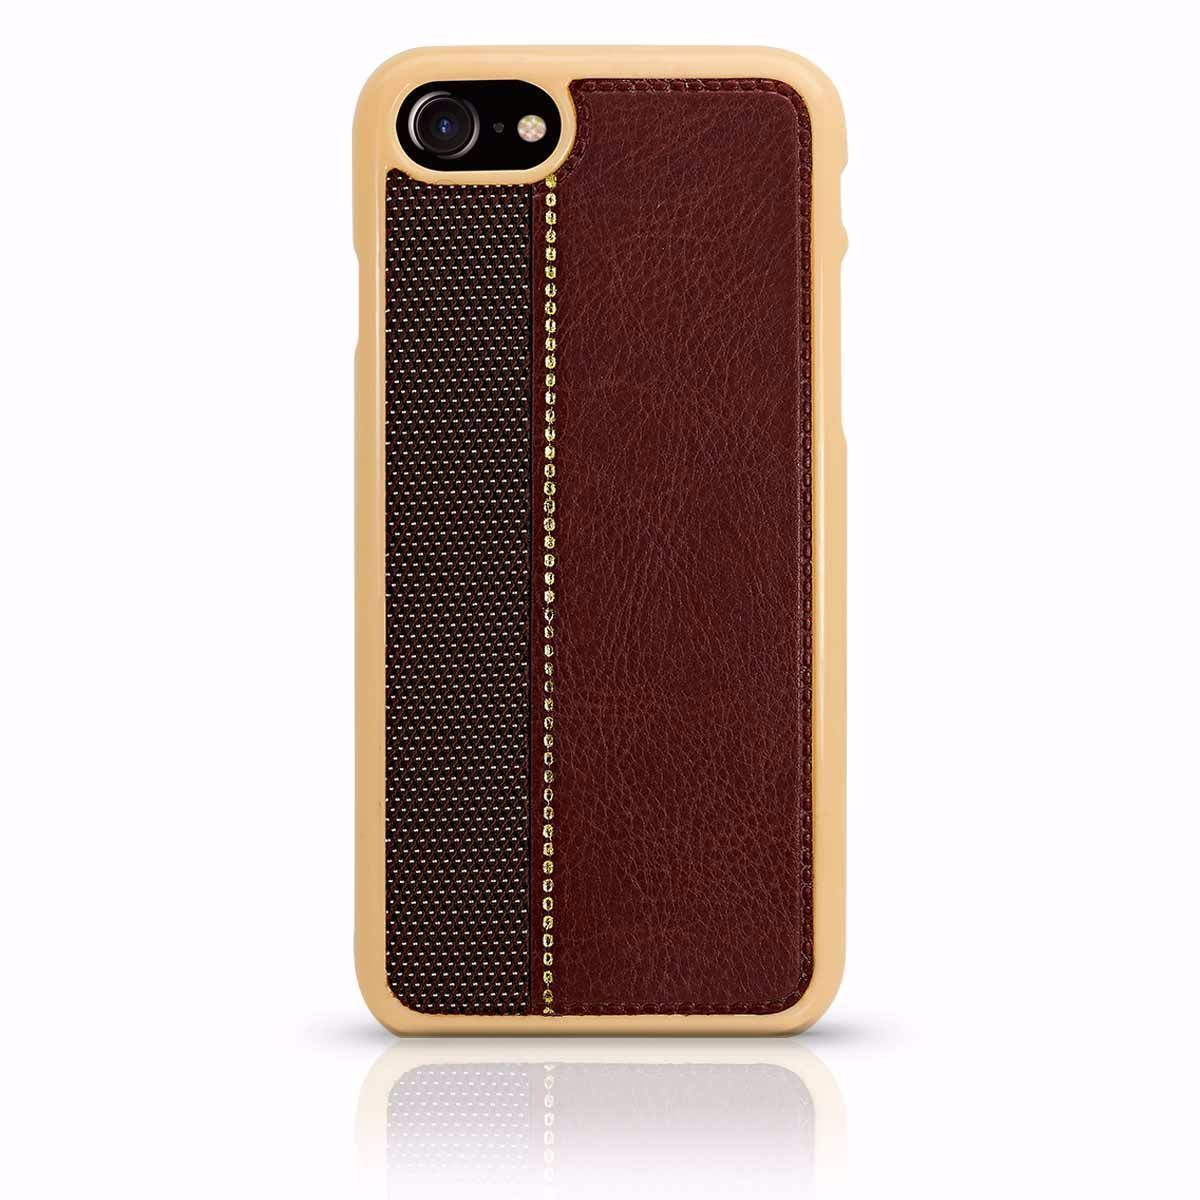 Ankaa Case for iPhone 6 Plus - Dark Brown